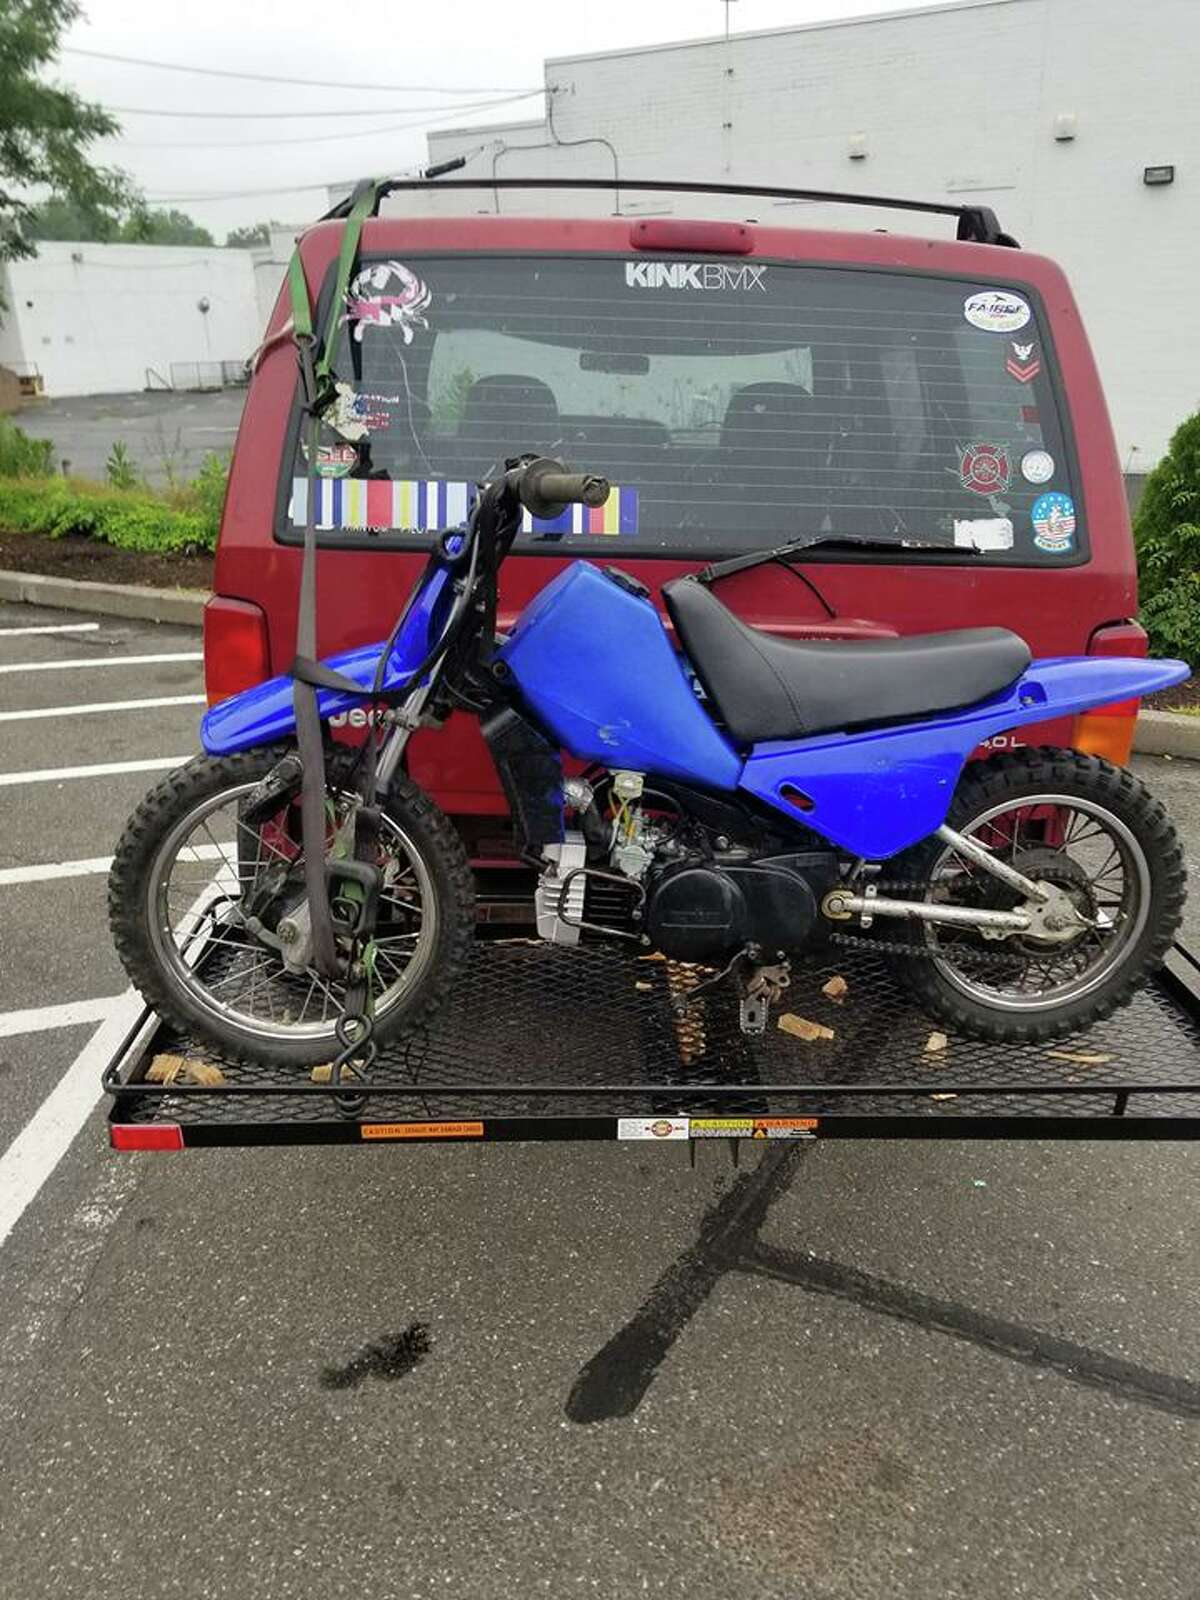 Among the items stolen was a Yamaha PW-80 dirt bike with serial number JYA21W007FA111863.